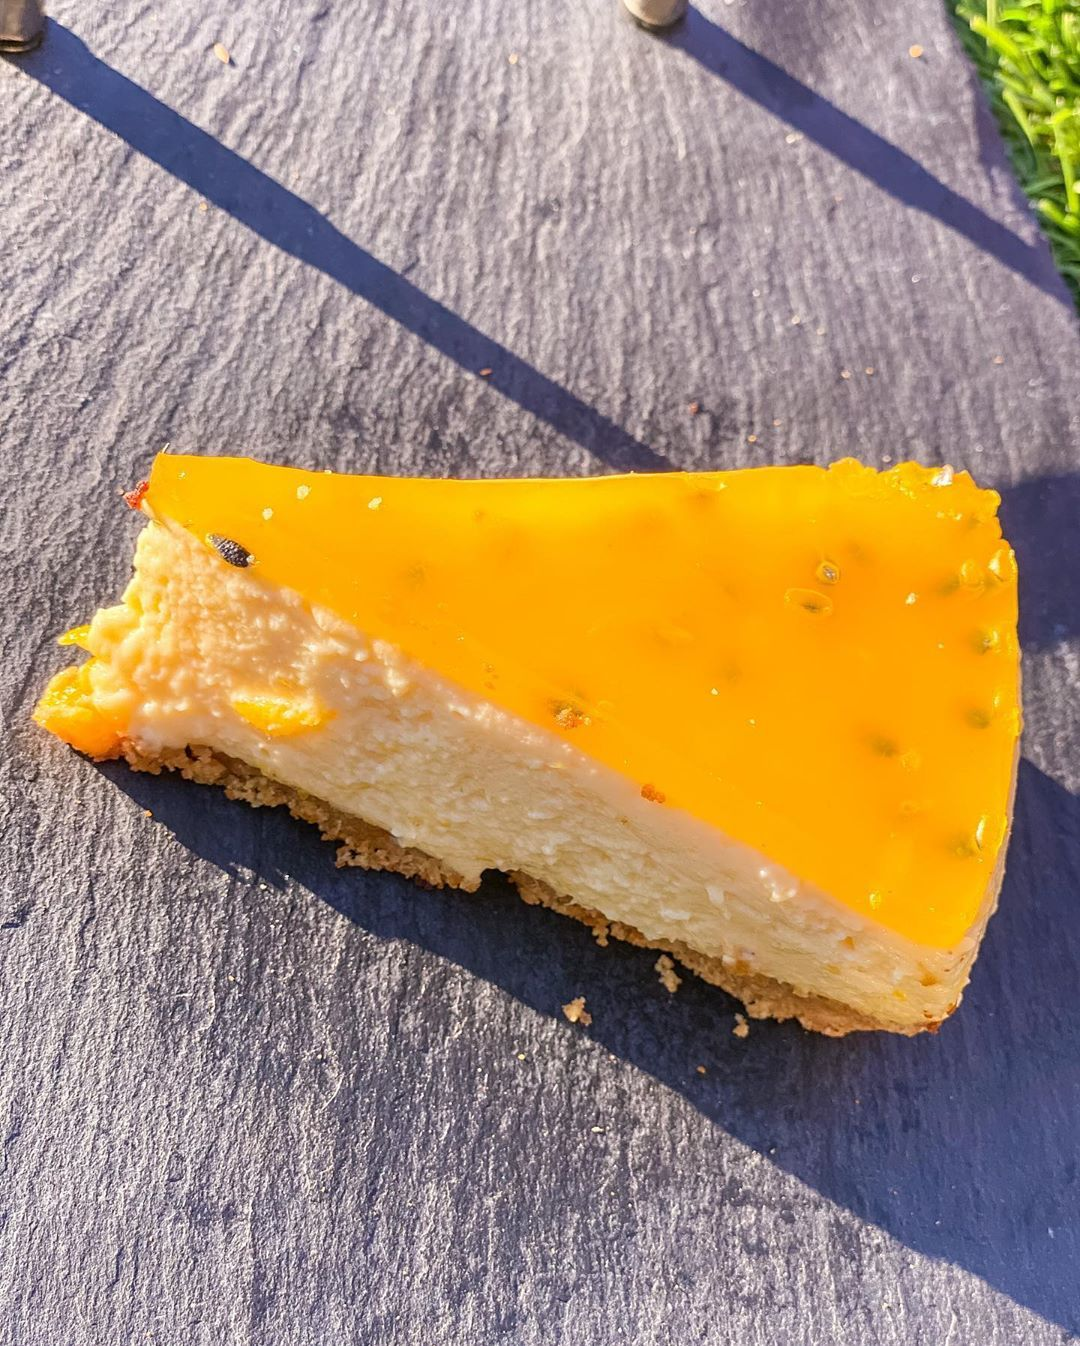 108 Sweet Street Halal And Vegetarian Friendly Mango Passion Cheesecake 108sweetstreet Leicester Homebaker Brownies Cheeseca In 2020 Foodie Food Eat